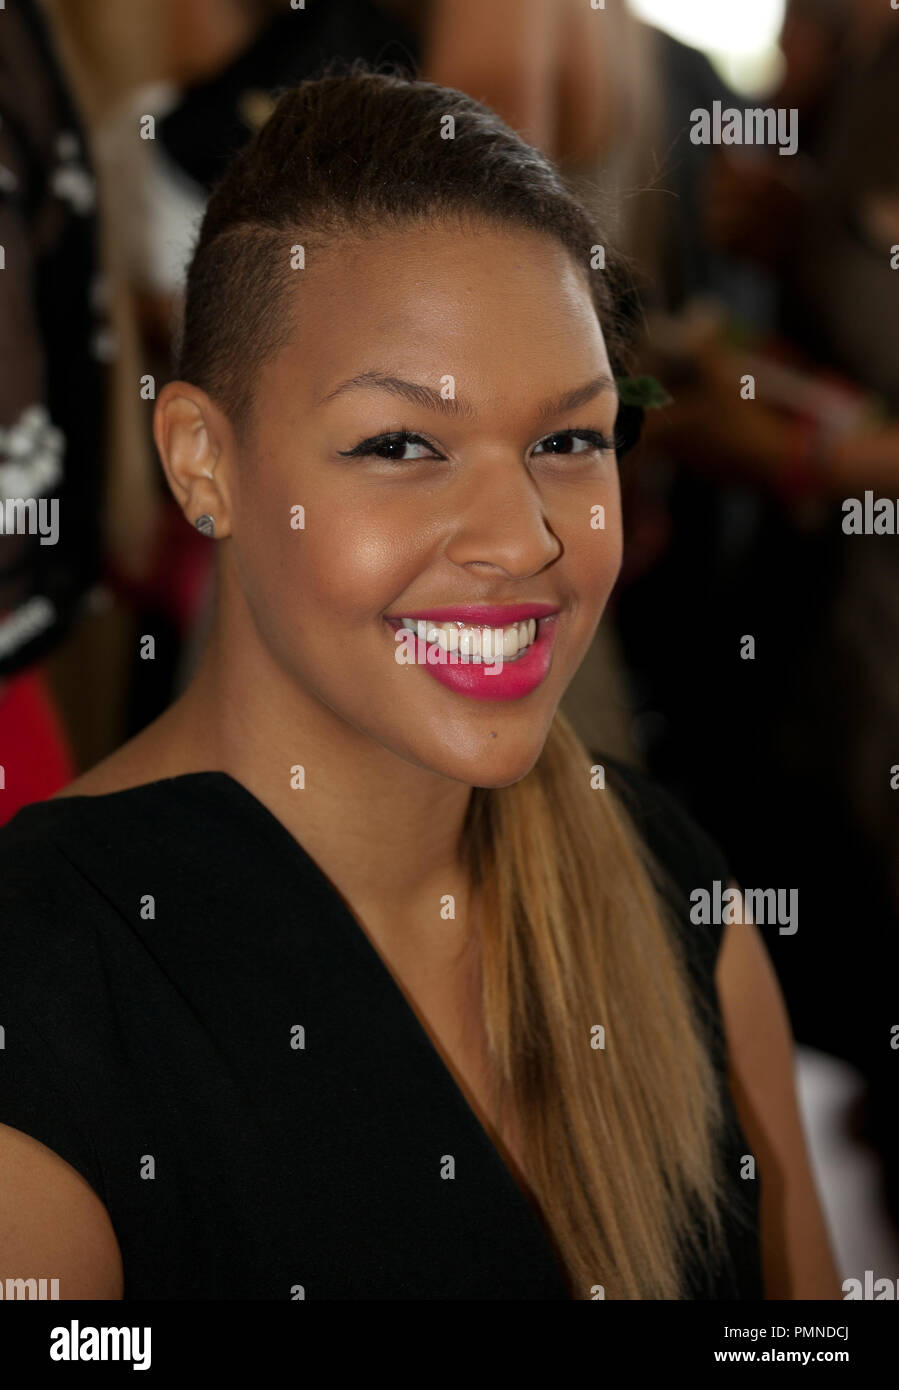 Liz Cambage at the Melbourne Cup, November 1, 2011. Stock Photo